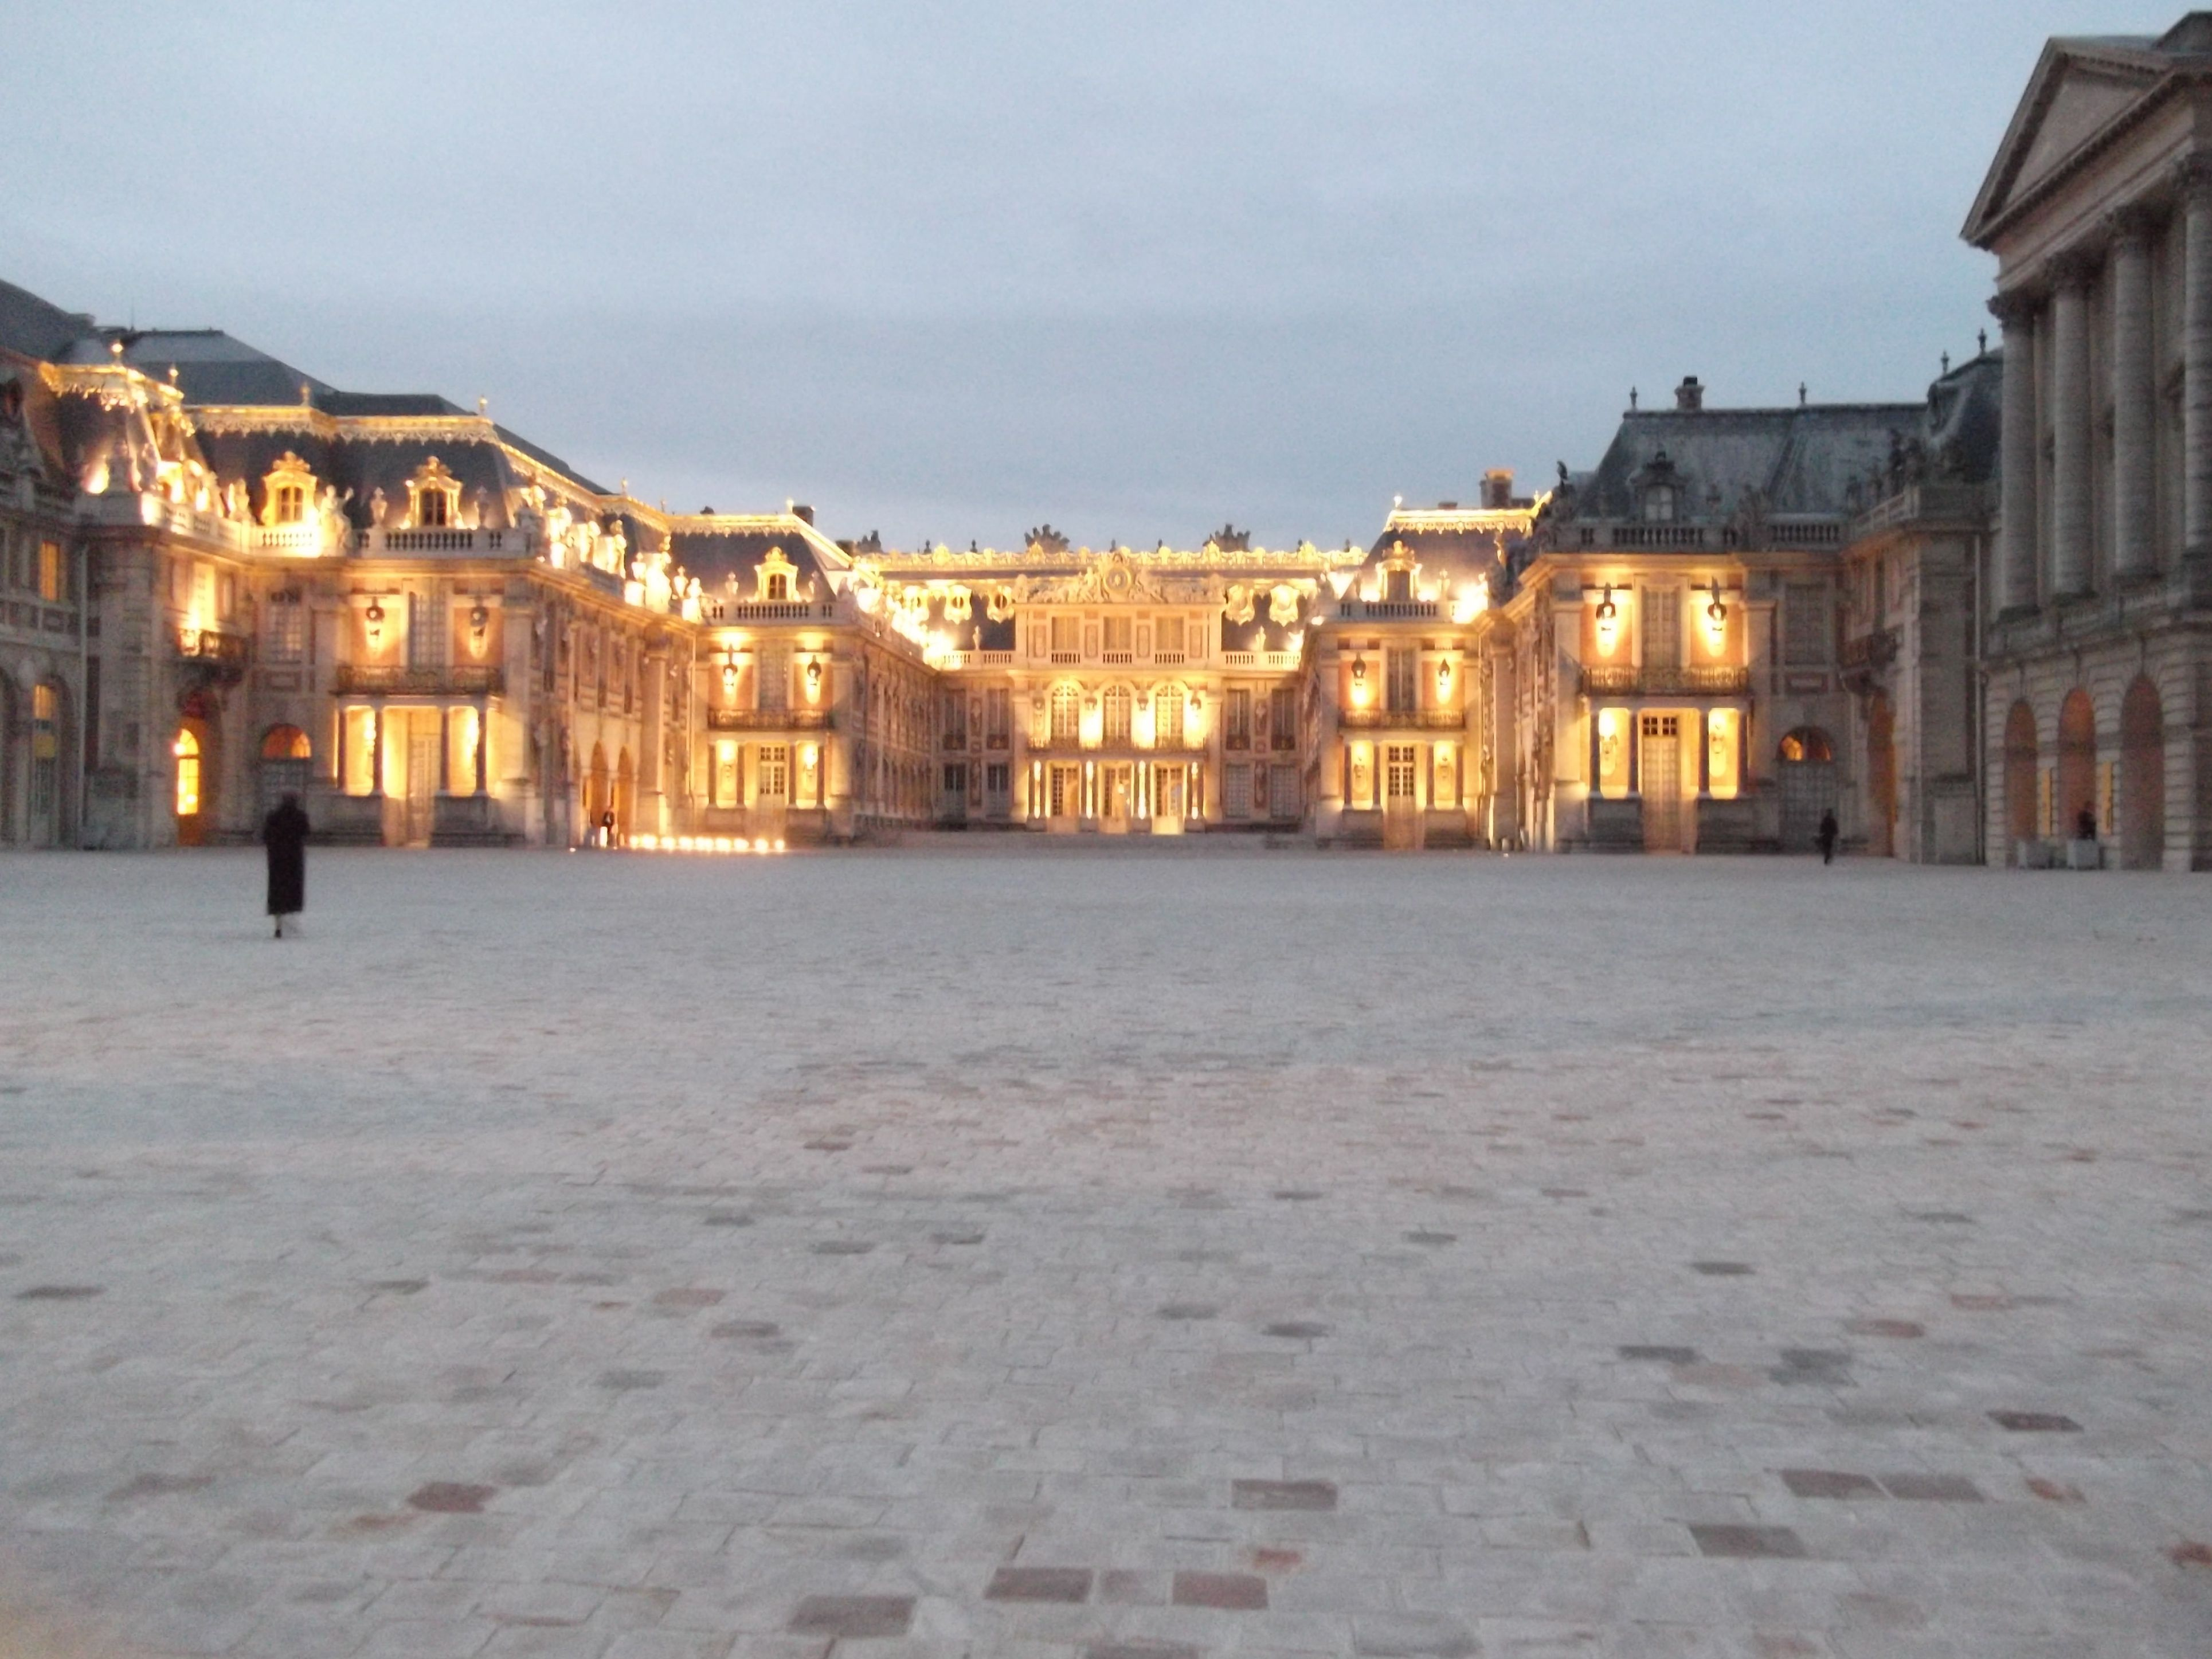 Arrival at Versailles